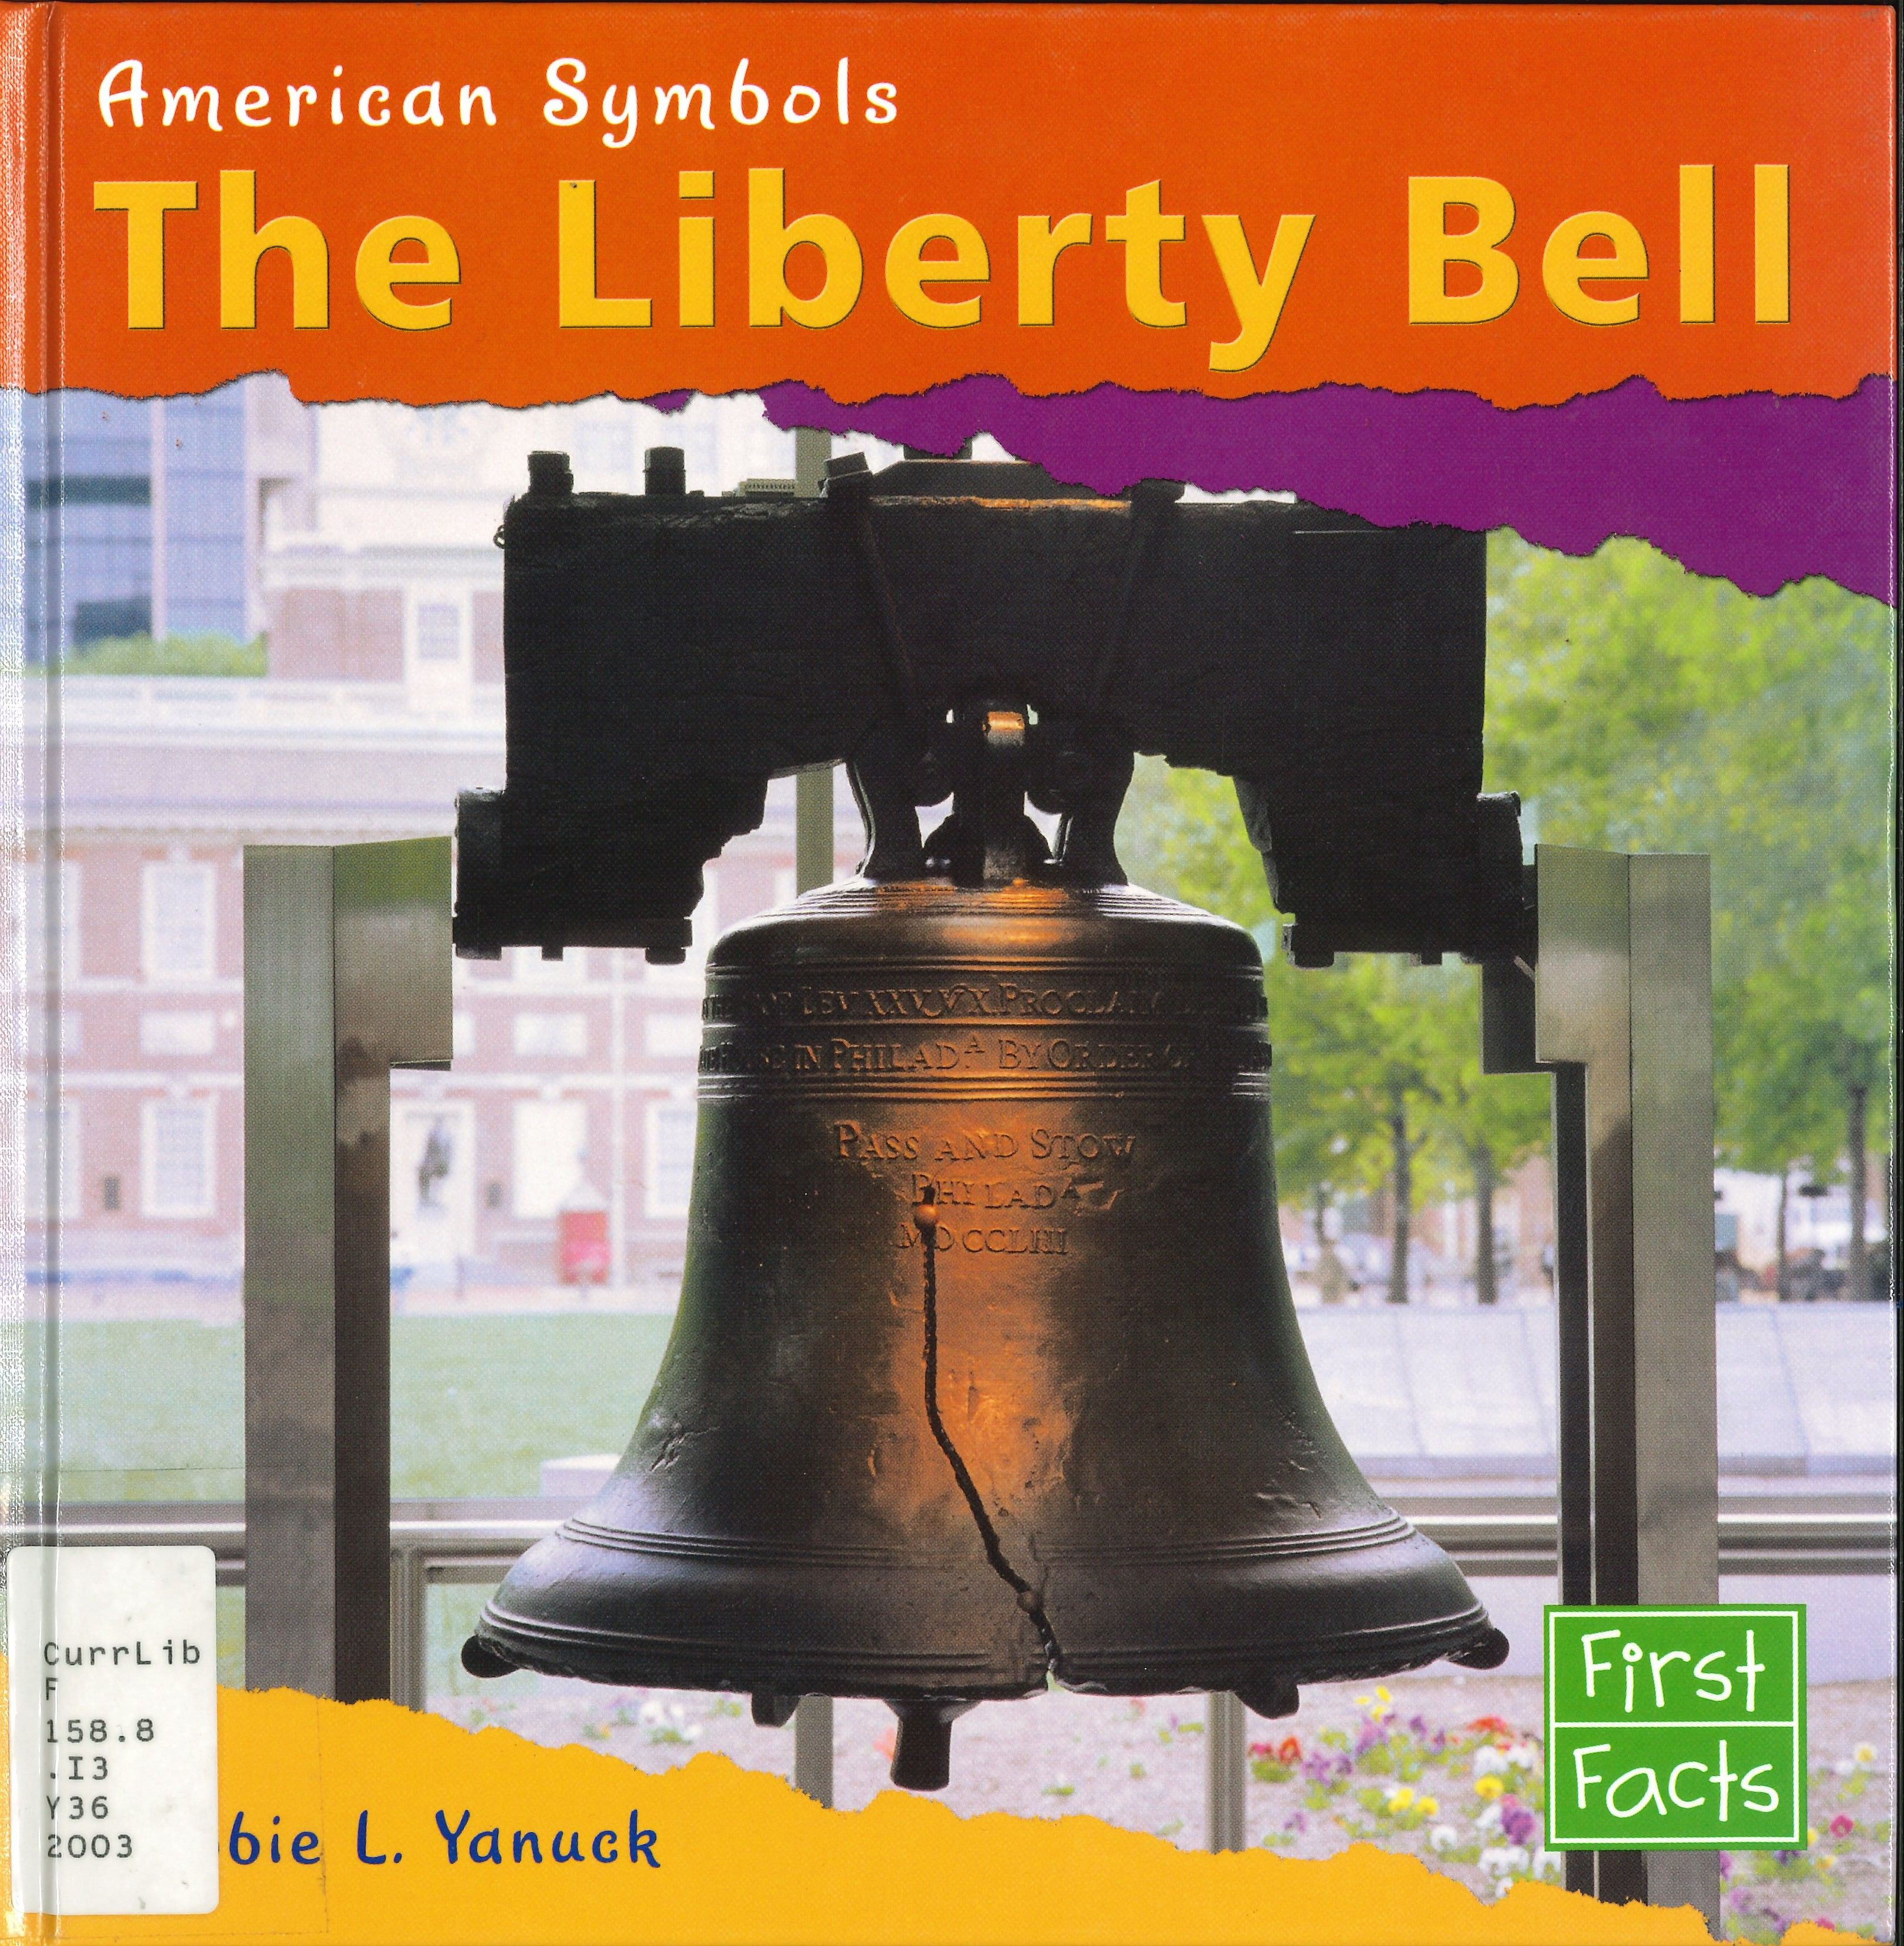 Gr 1 3 Discusses The History Of The Liberty Bell Its